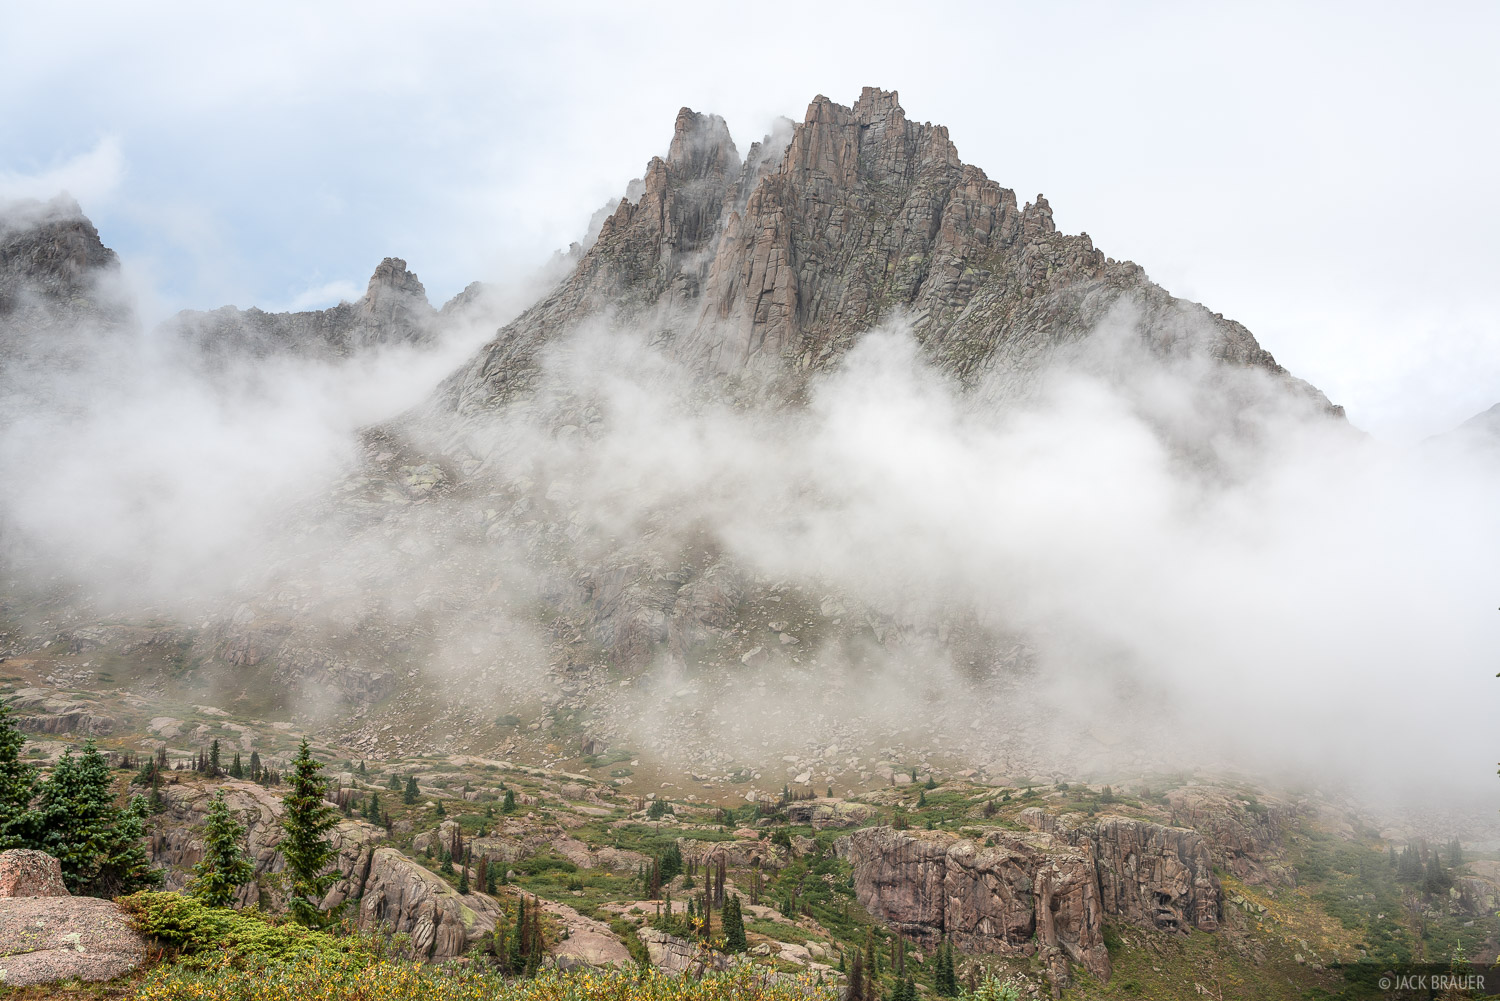 Colorado, Jagged Mountain, Needle Mountains, San Juan Mountains, Weminuche Wilderness, photo